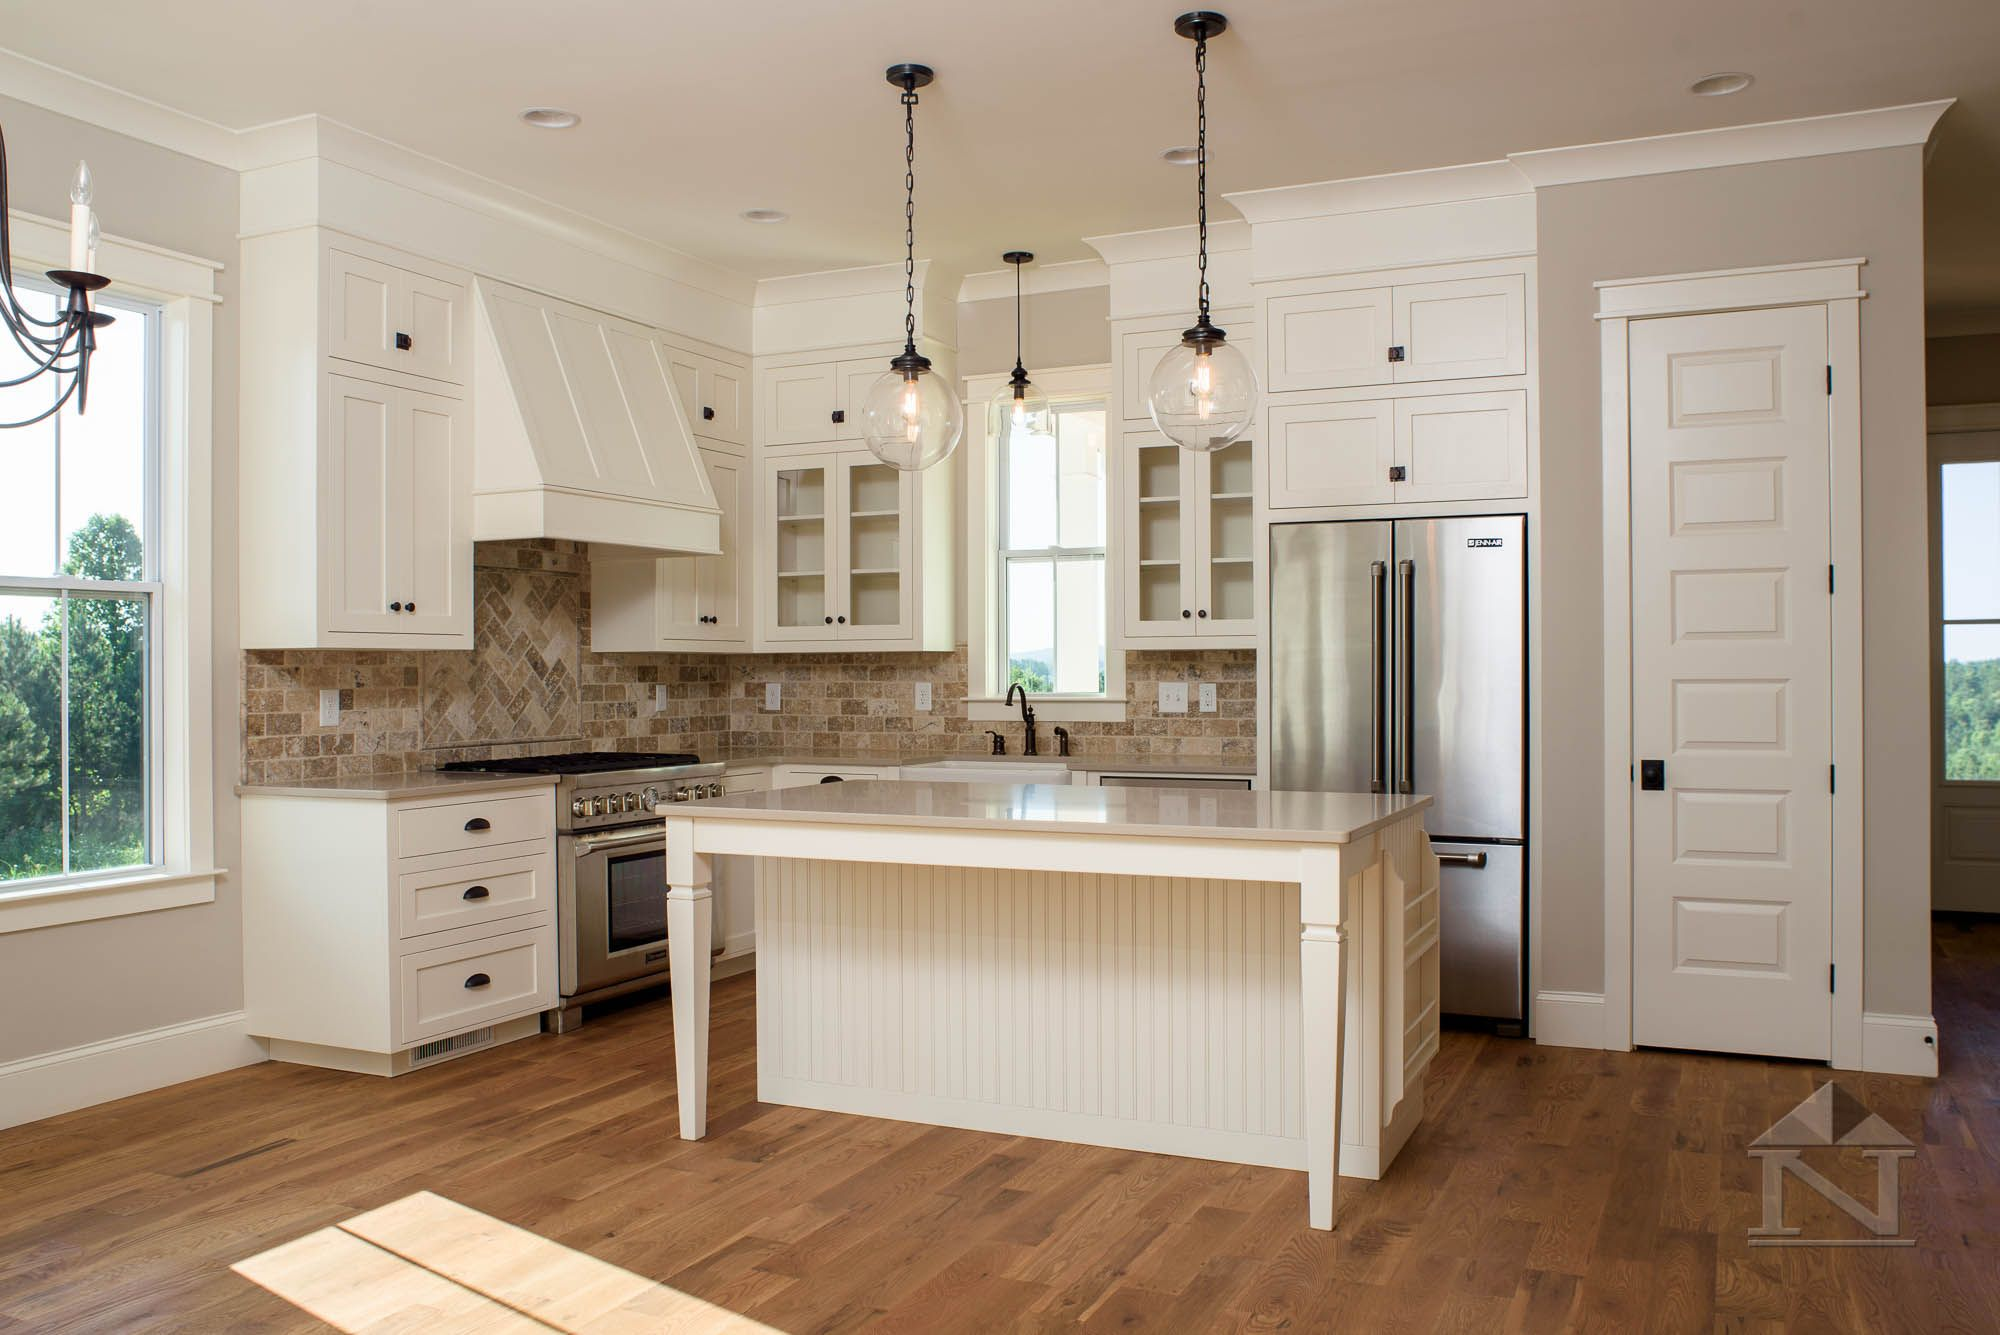 Custom White Kitchen Cabinets In Farmhouse Home Built By North Point Builders Of Shelby Carolina